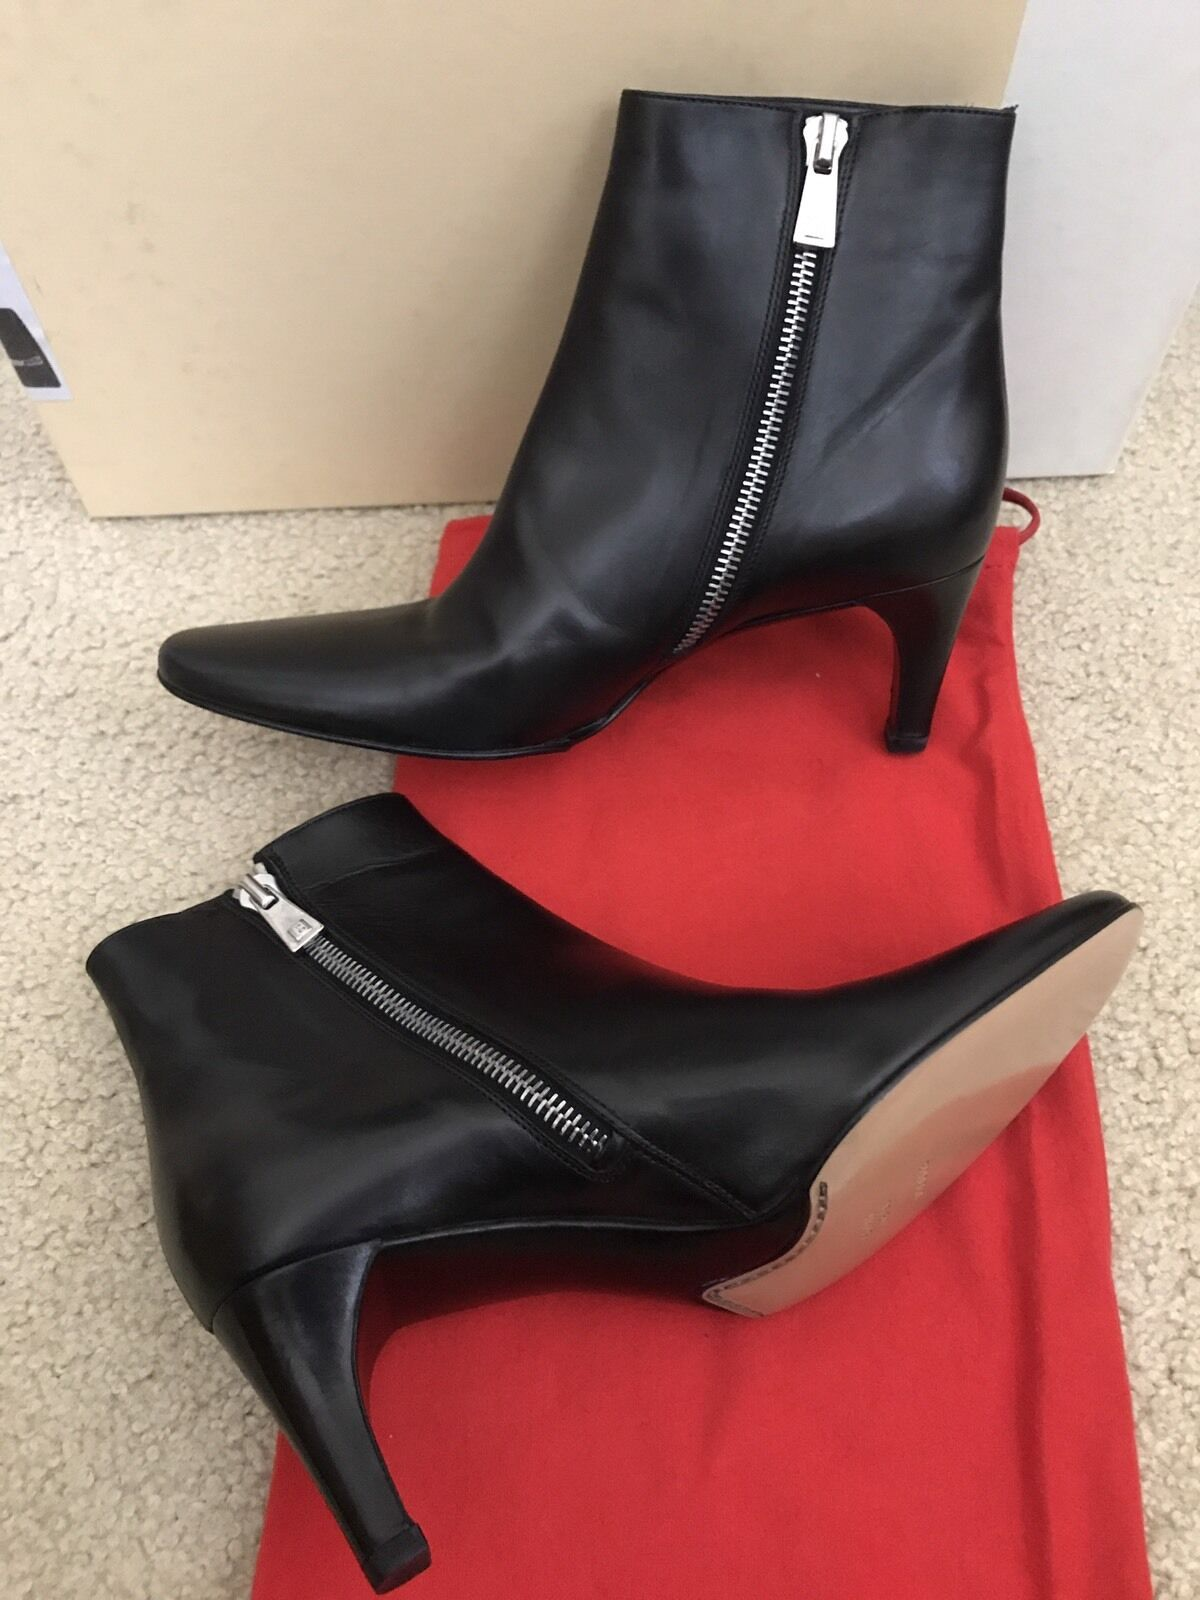 BALLY Black Leather Ankle Boots shoes Sz 35  4.5 New In Box  550